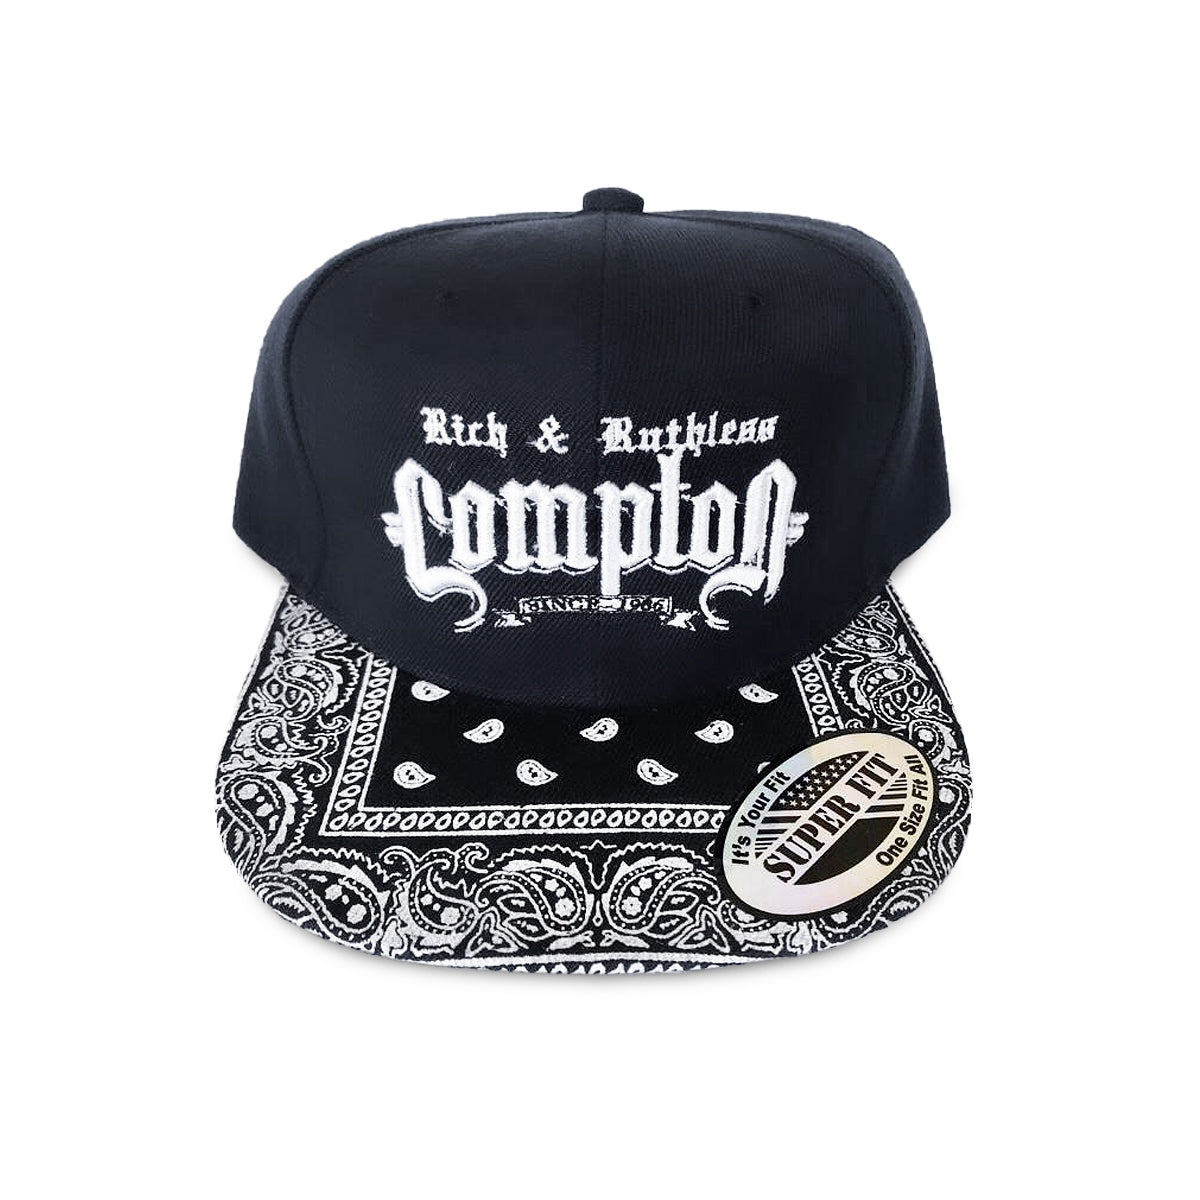 Rich & Ruthless Compton Hat (Black Paisley)